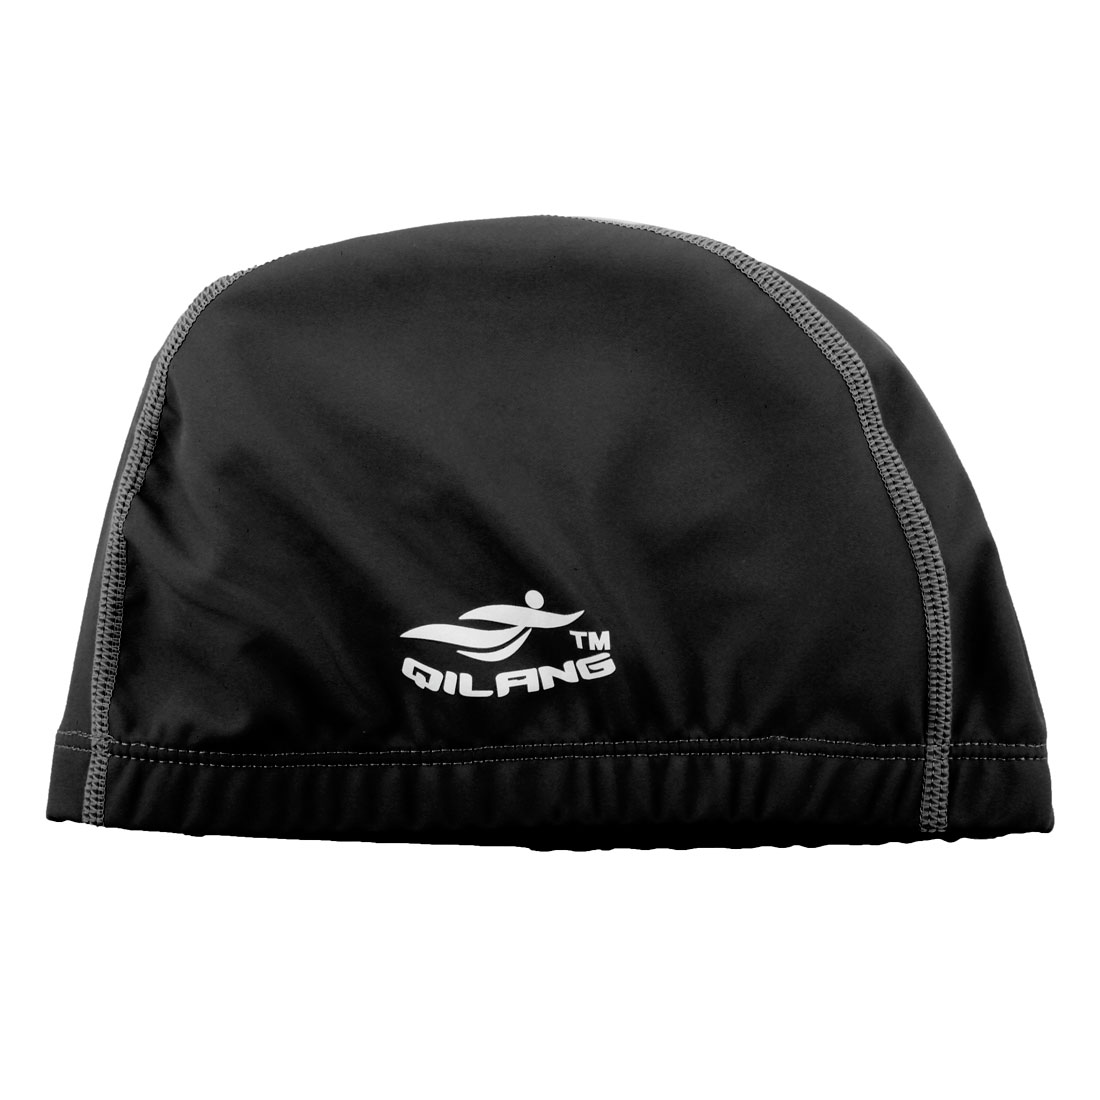 Unisex Dome Shaped Non-slip Stretchable Swimming Cap Portable Bathing Hat Black